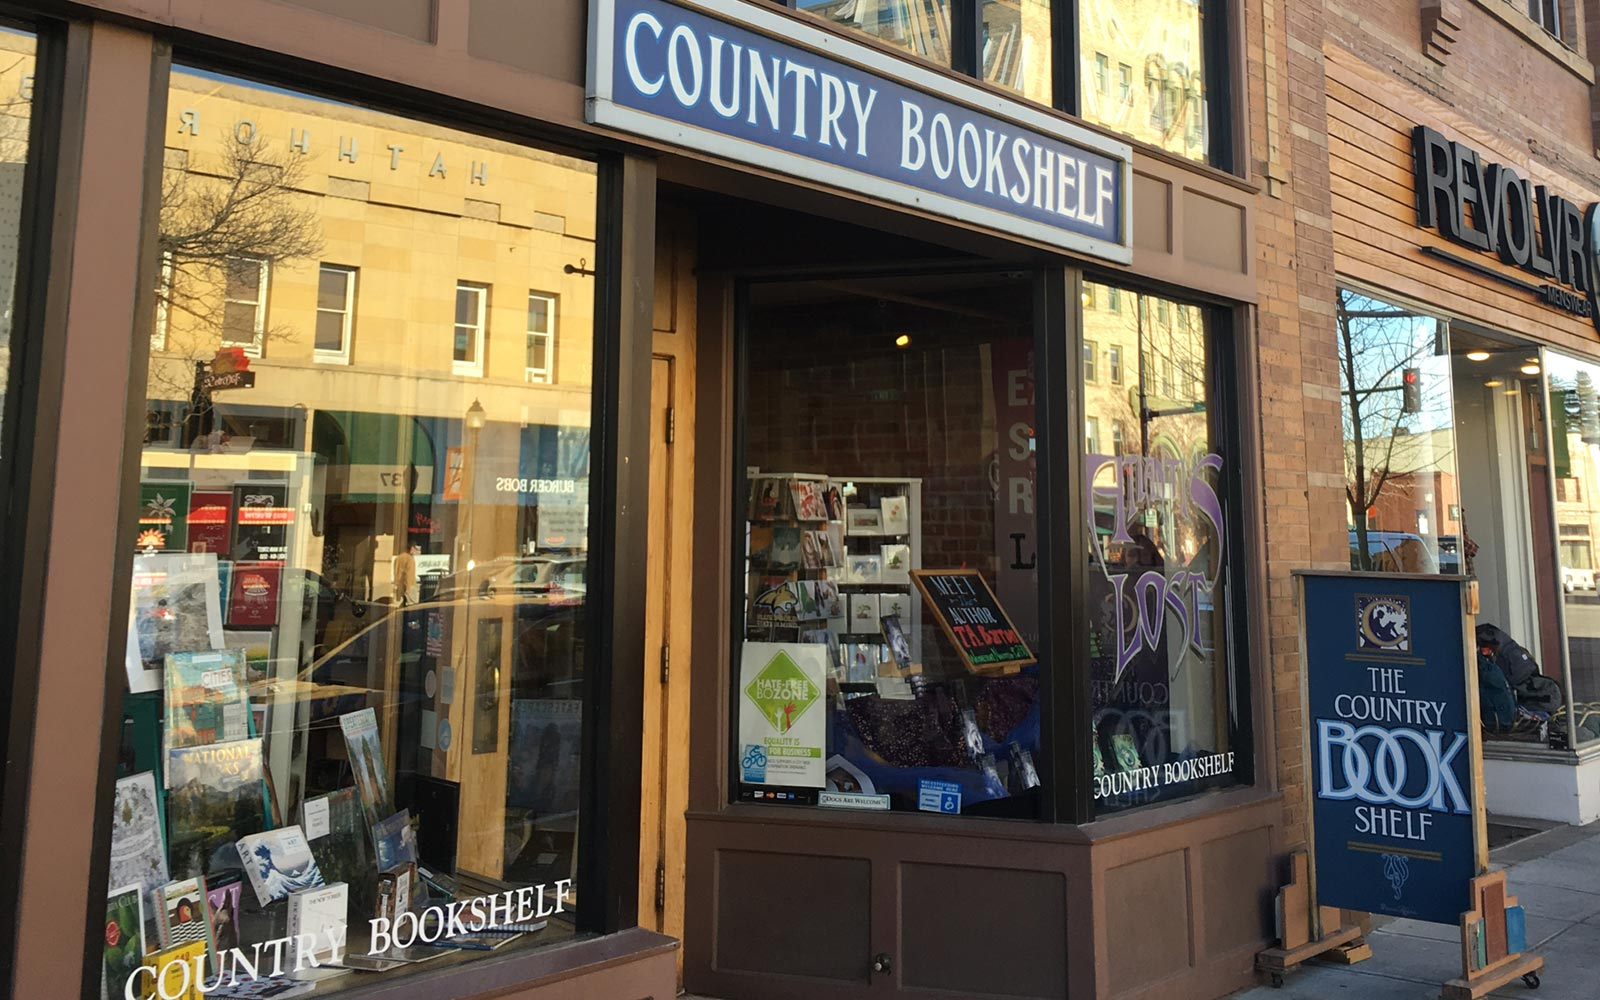 Country Bookshelf, Bozeman, Montana